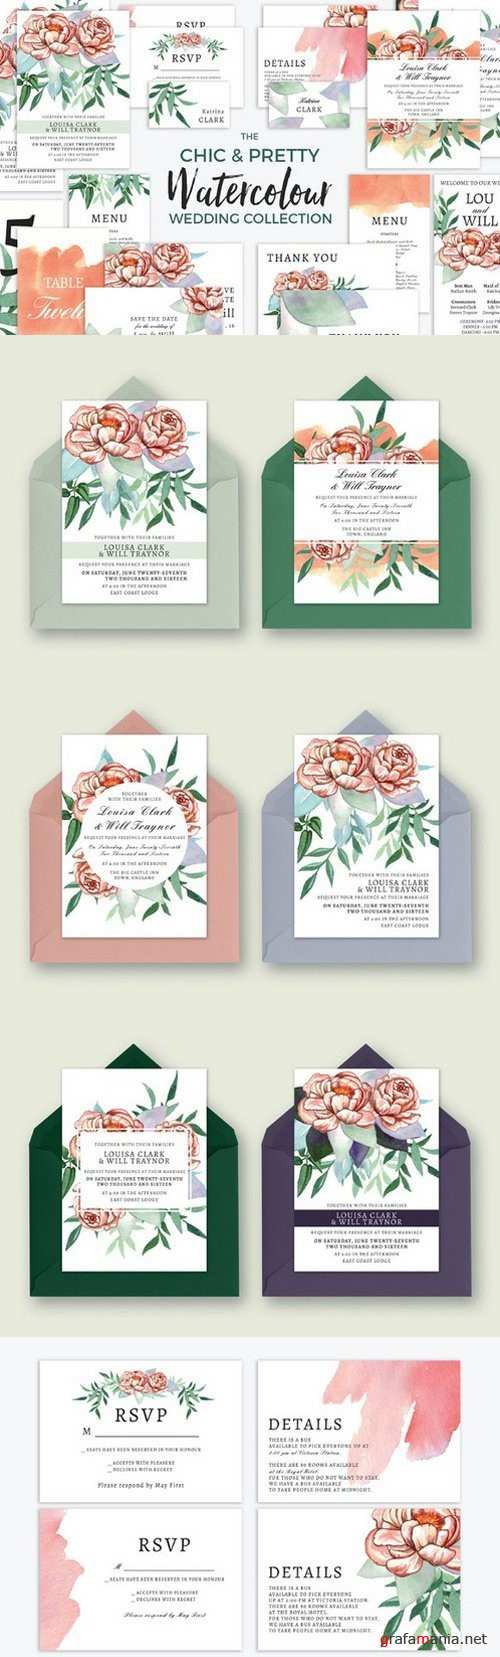 Chic Watercolour Wedding Collection - 827267